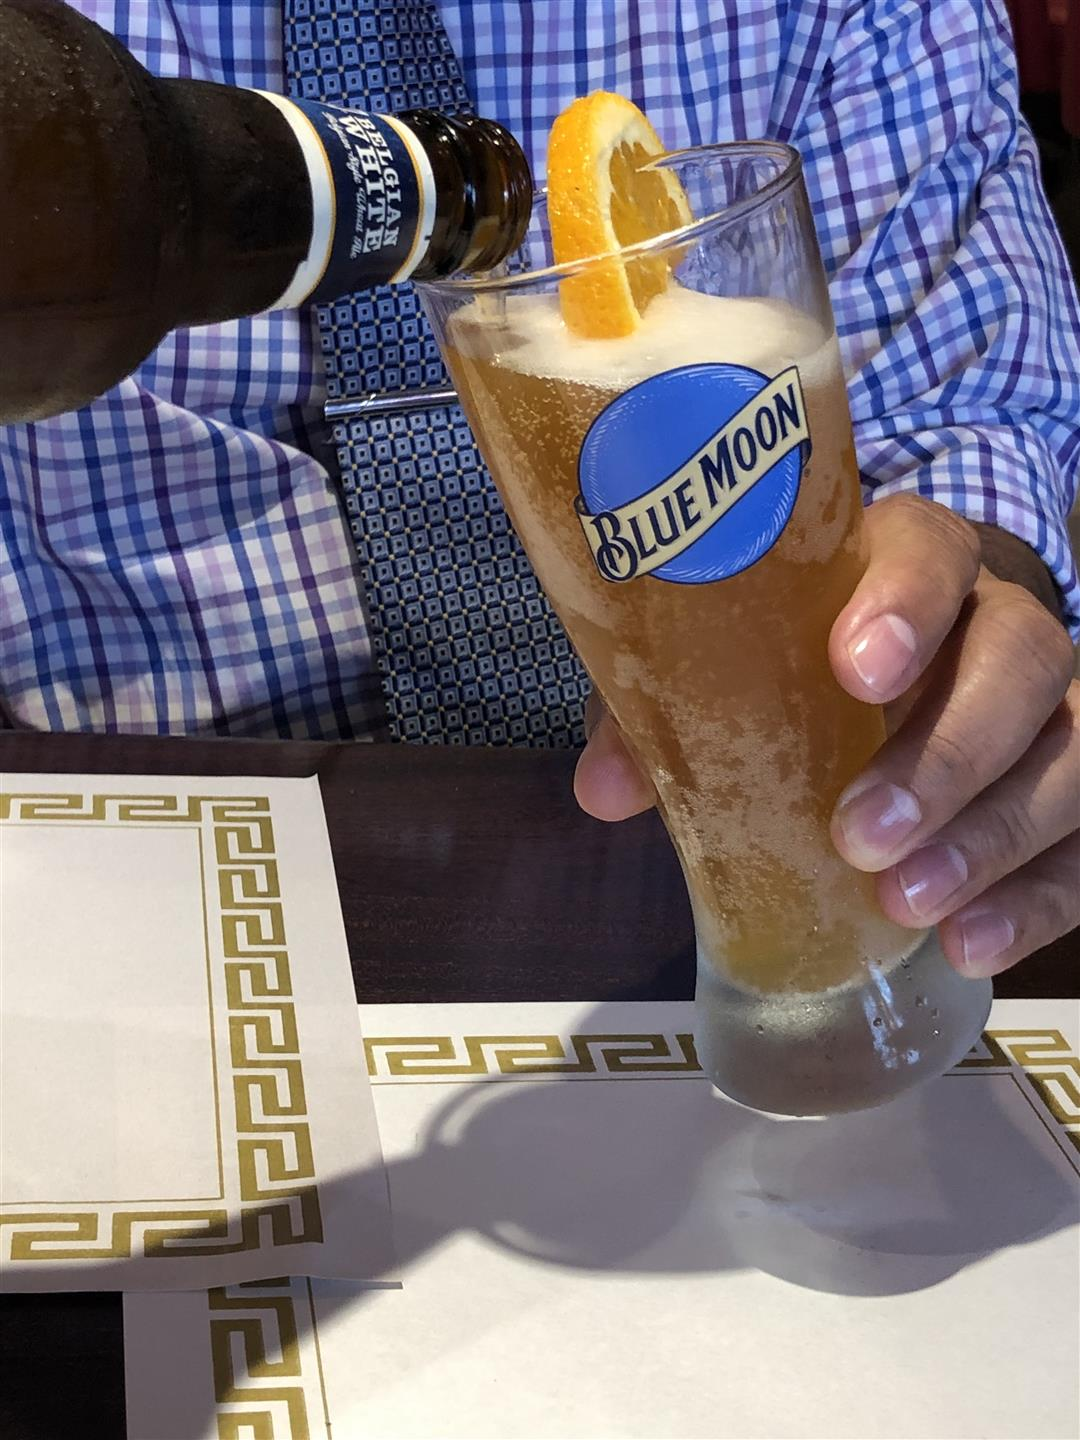 Blue Moon Beer being poured into a cup